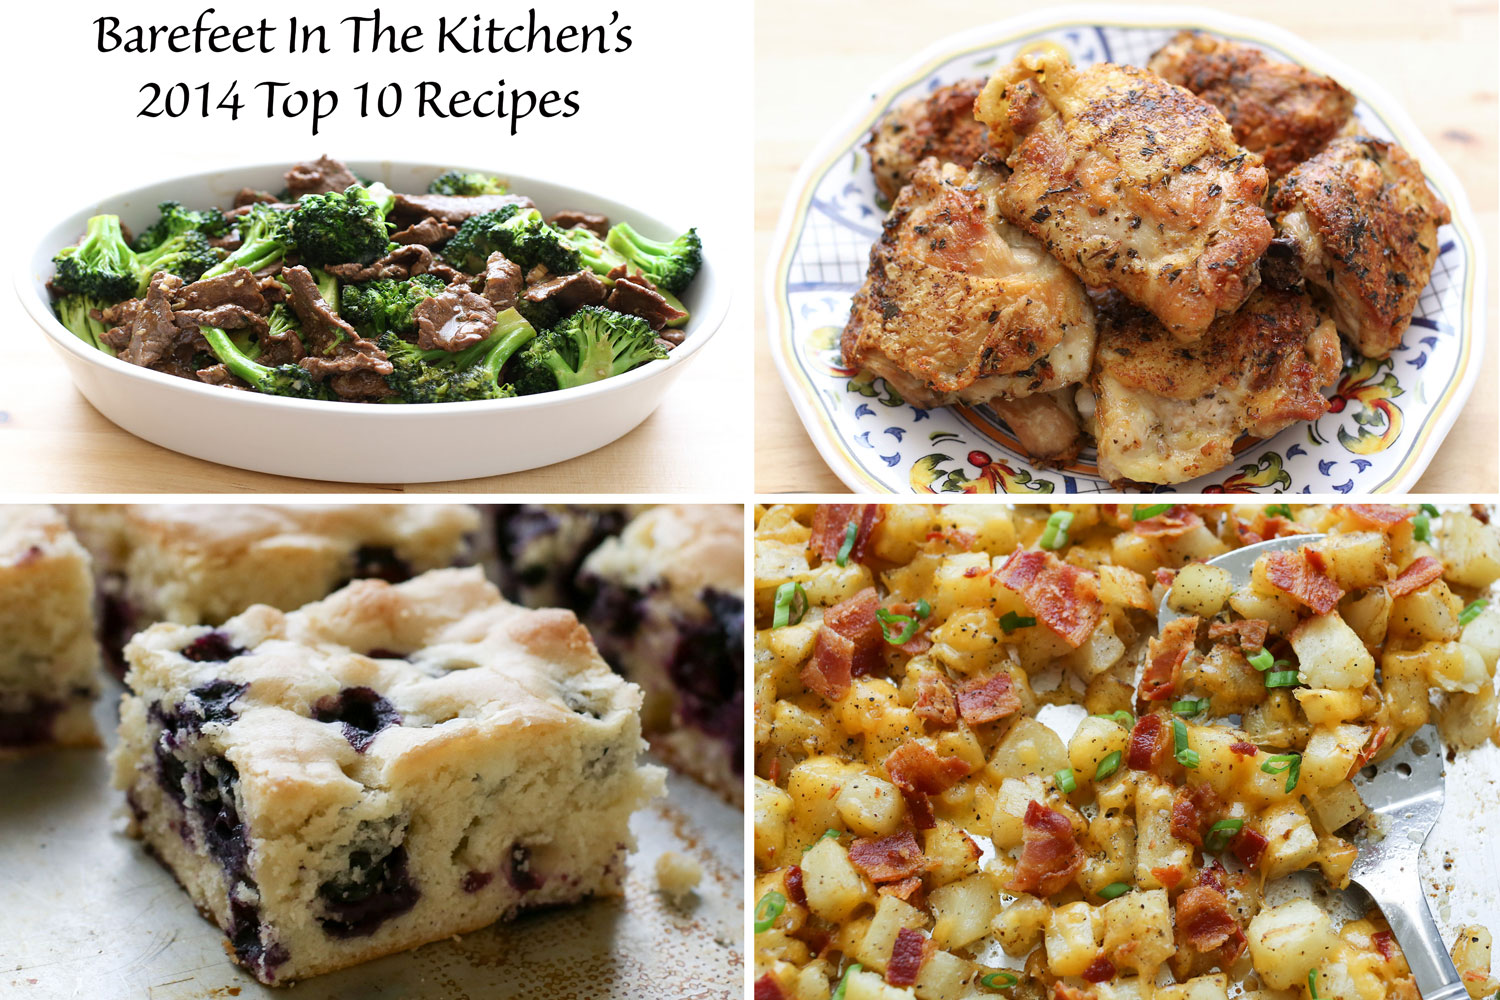 Top 10 New Recipes from 2014! (chosen by BFITK readers)